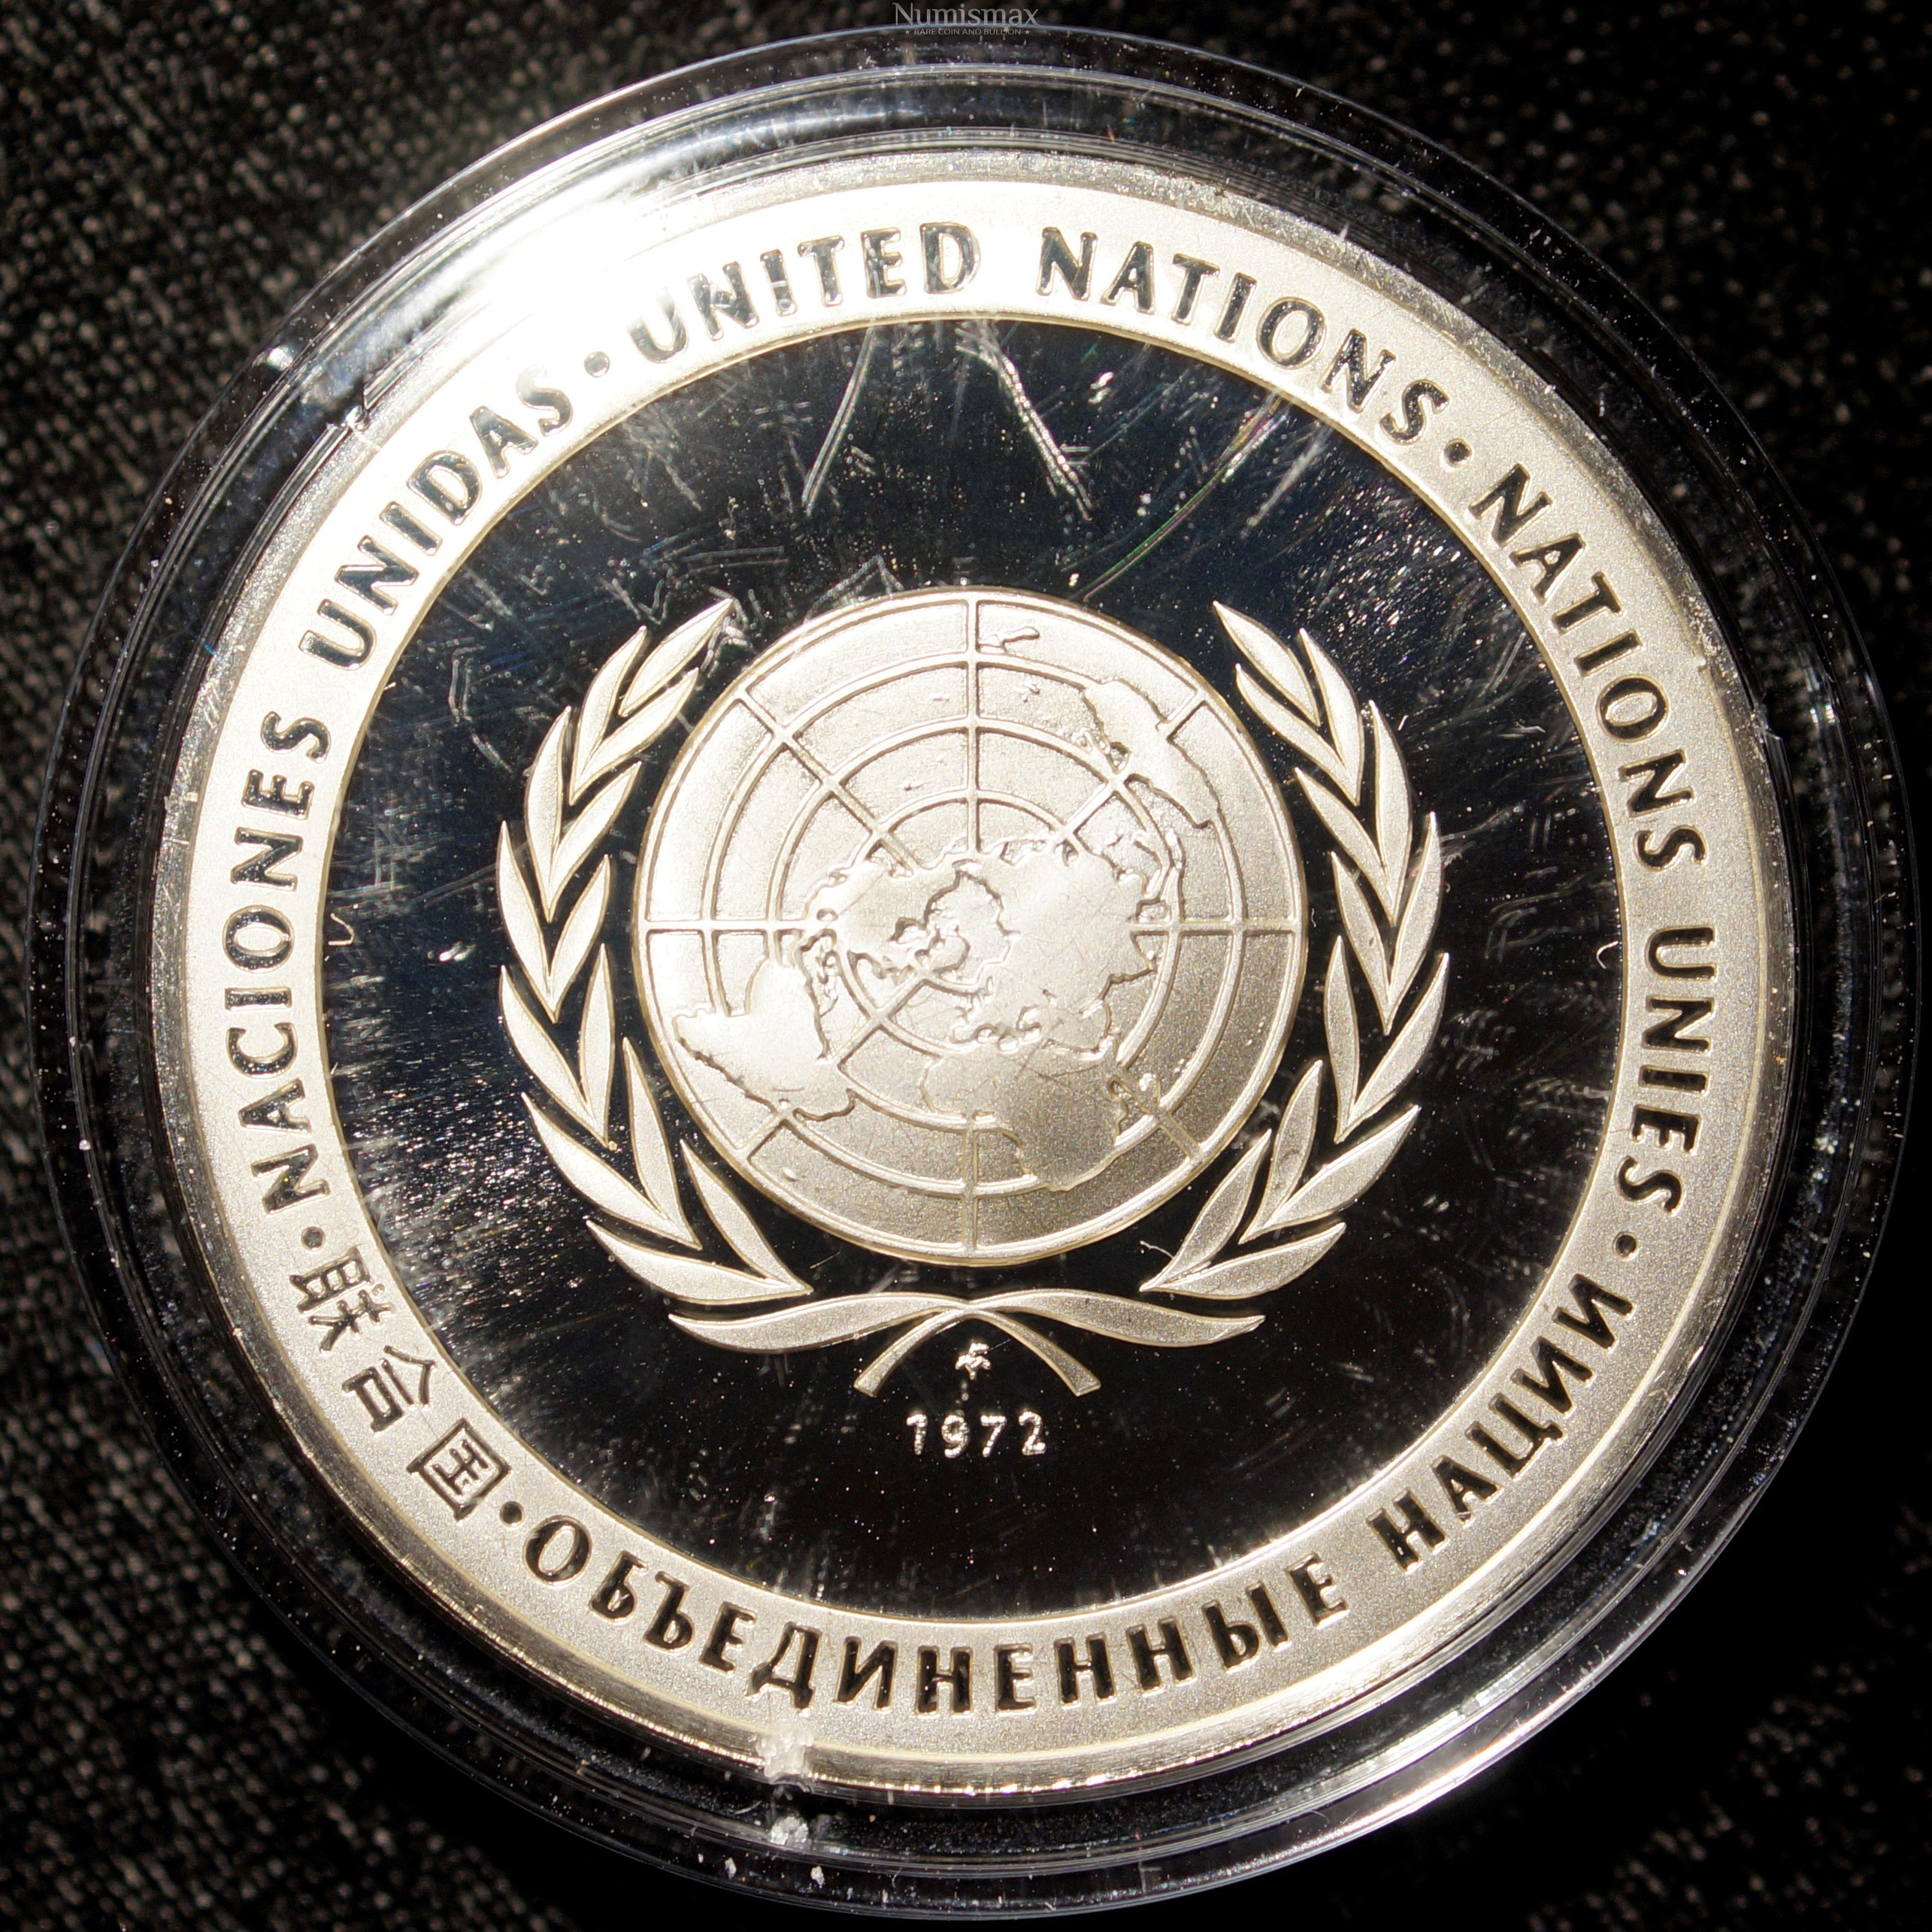 1972 United Nations Sterling Silver Proof Peace Medal